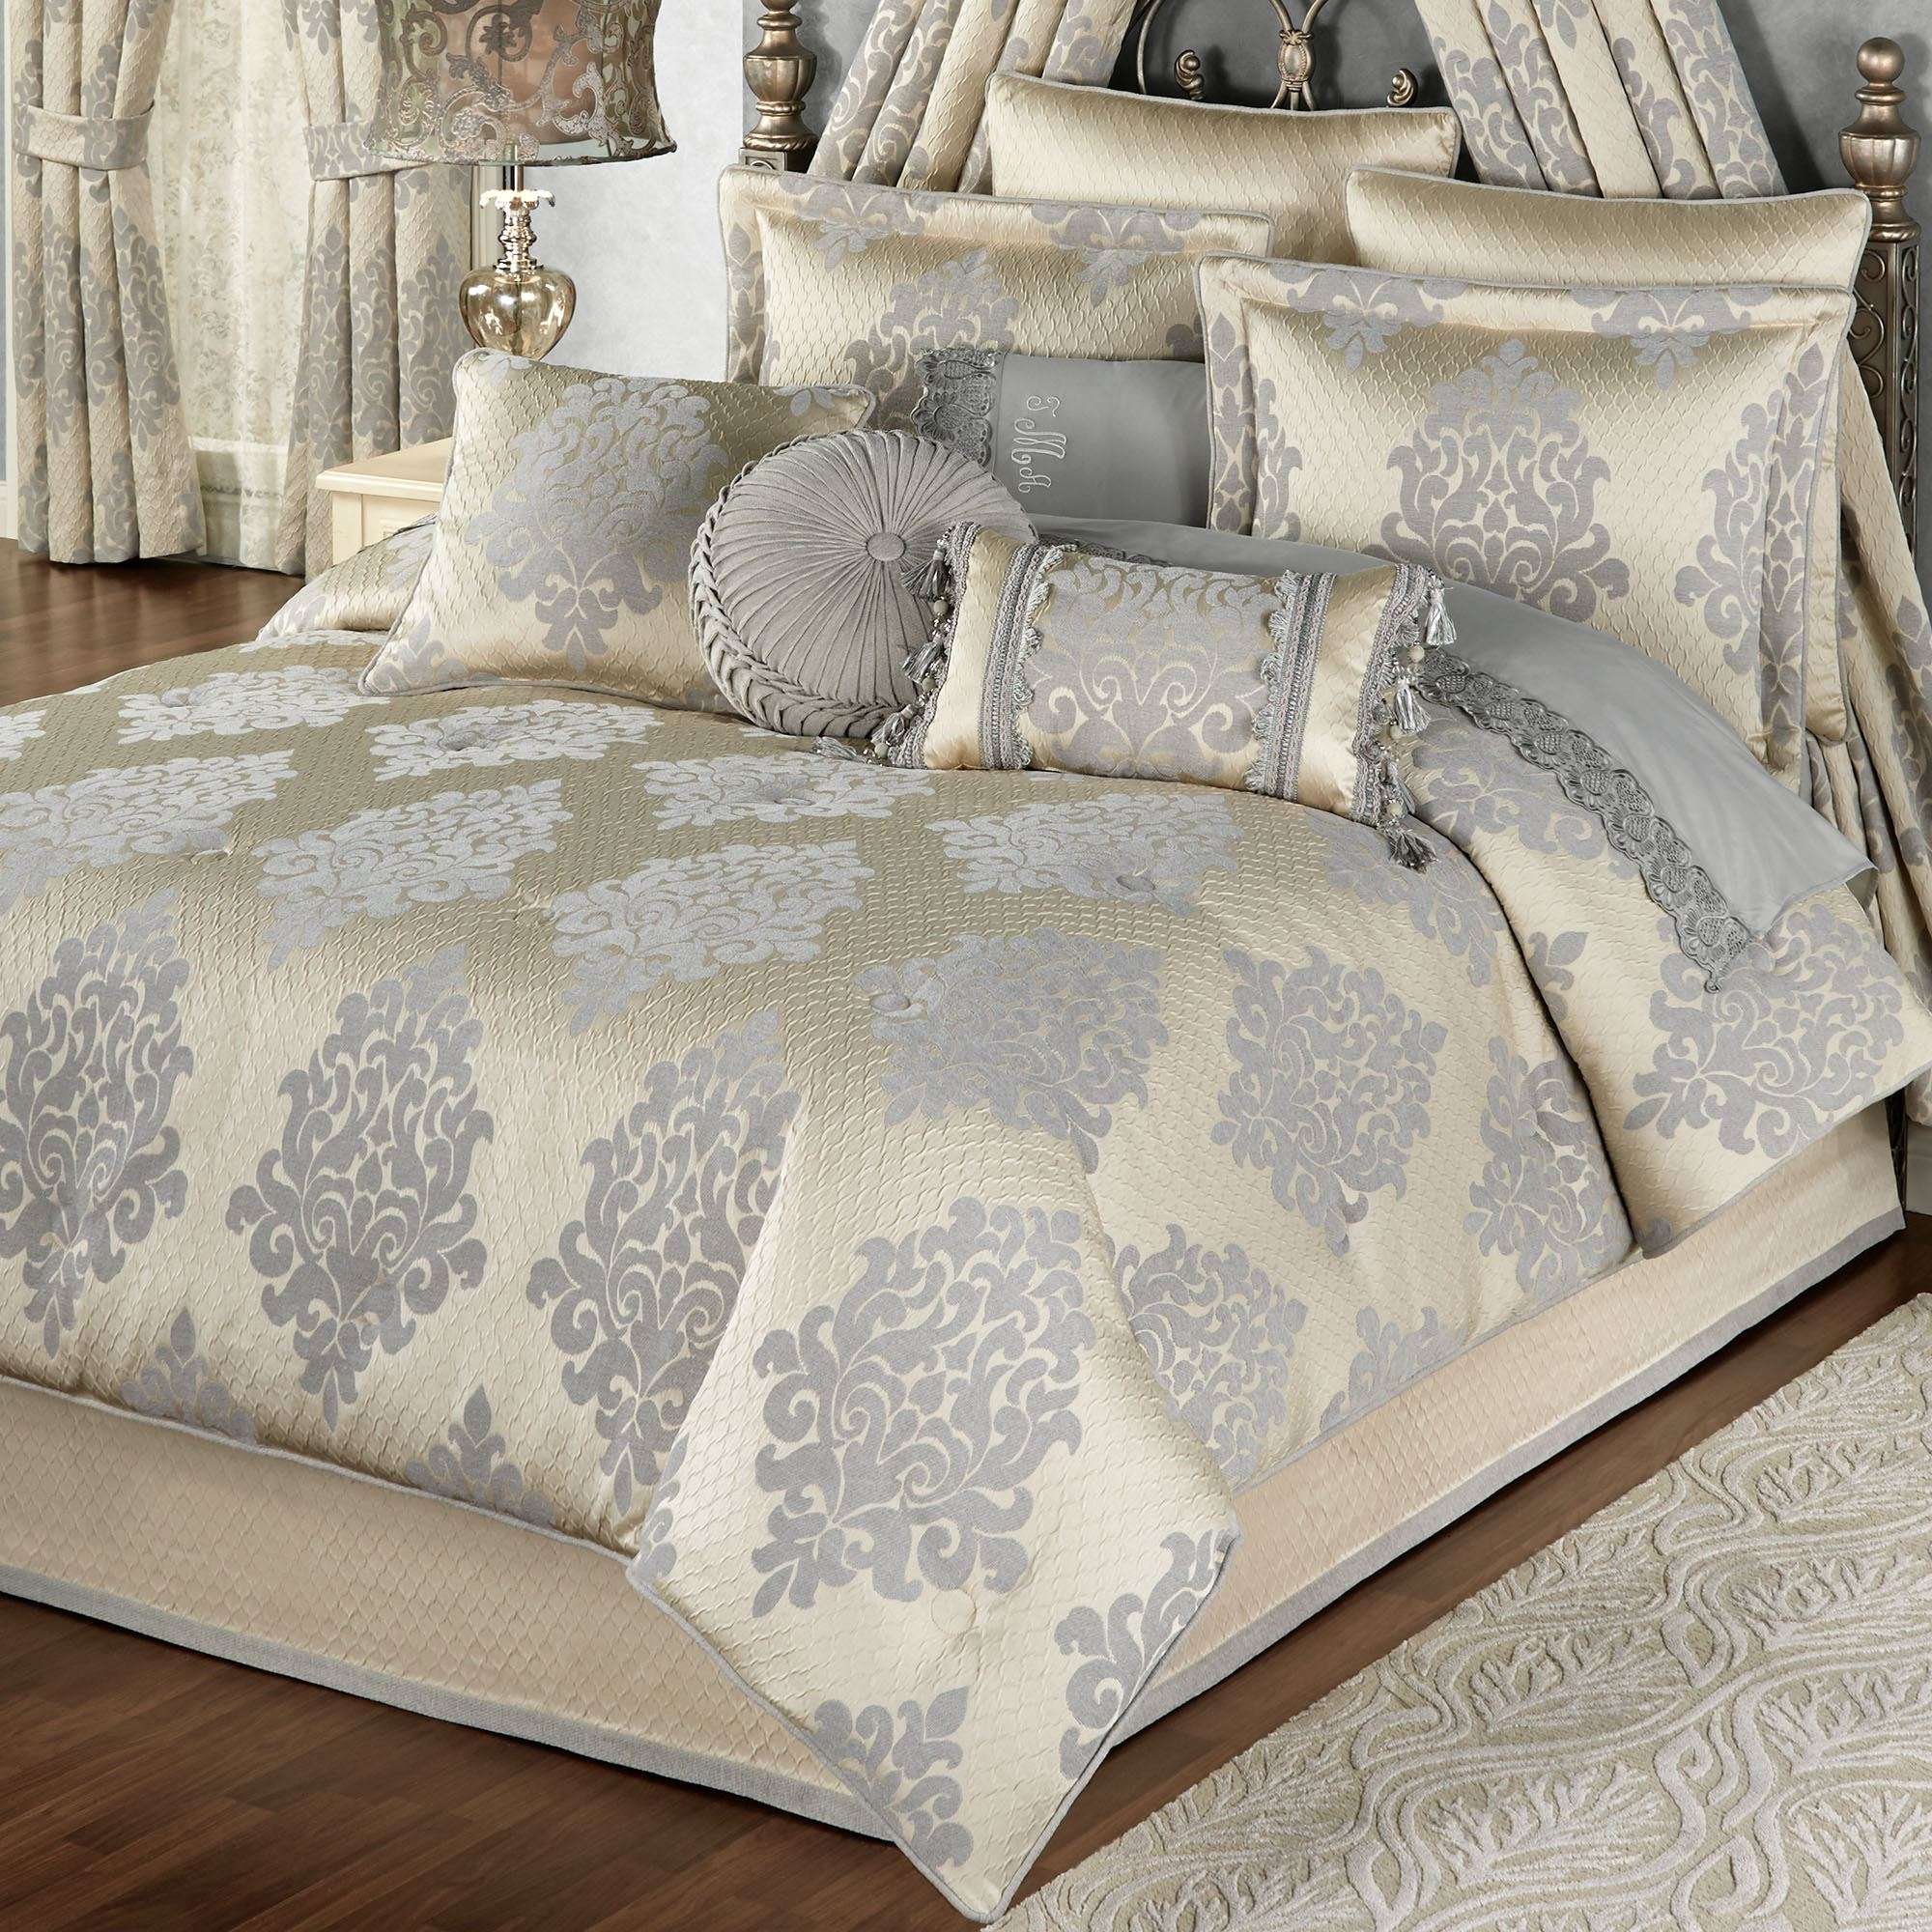 bedding solid and striped sets dsc ivory overfilled looks oversized in comforter save queen set emboss reversible